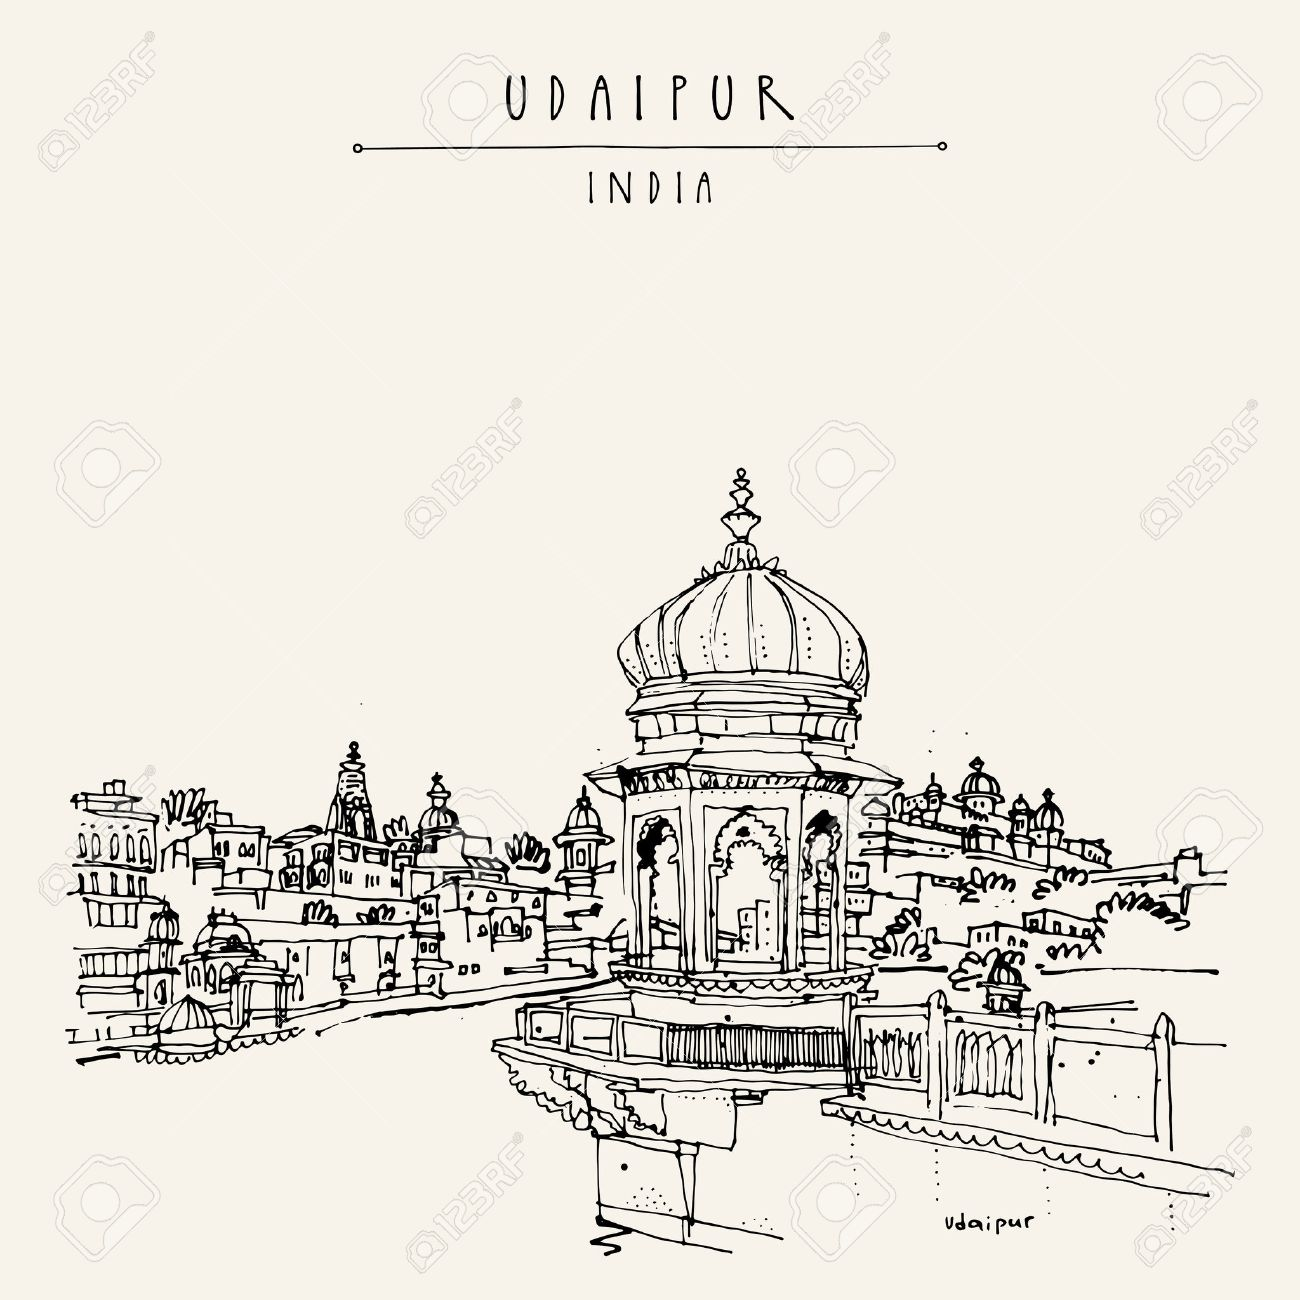 View of Udaipur, Rajasthan, India. Hindu temple, ghat. Hand drawn cityscape sketch. Travel art. Vintage artistic postcard template. Vector illustration - 58716178